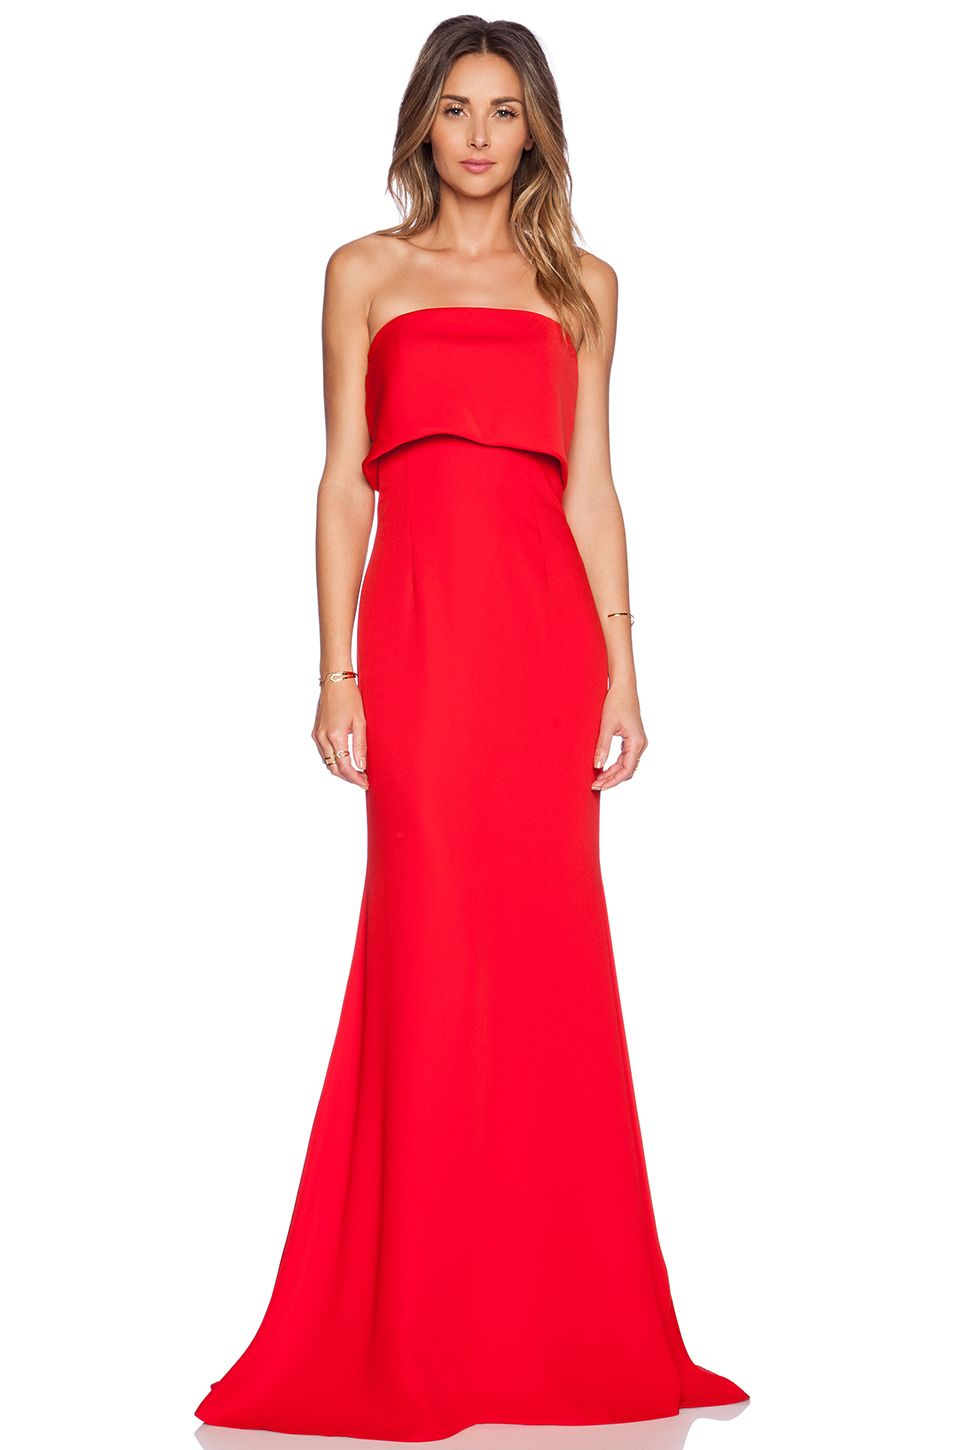 JARLO Blaze Maxi Dress in Red | Style | Pinterest | Maxi dresses ...